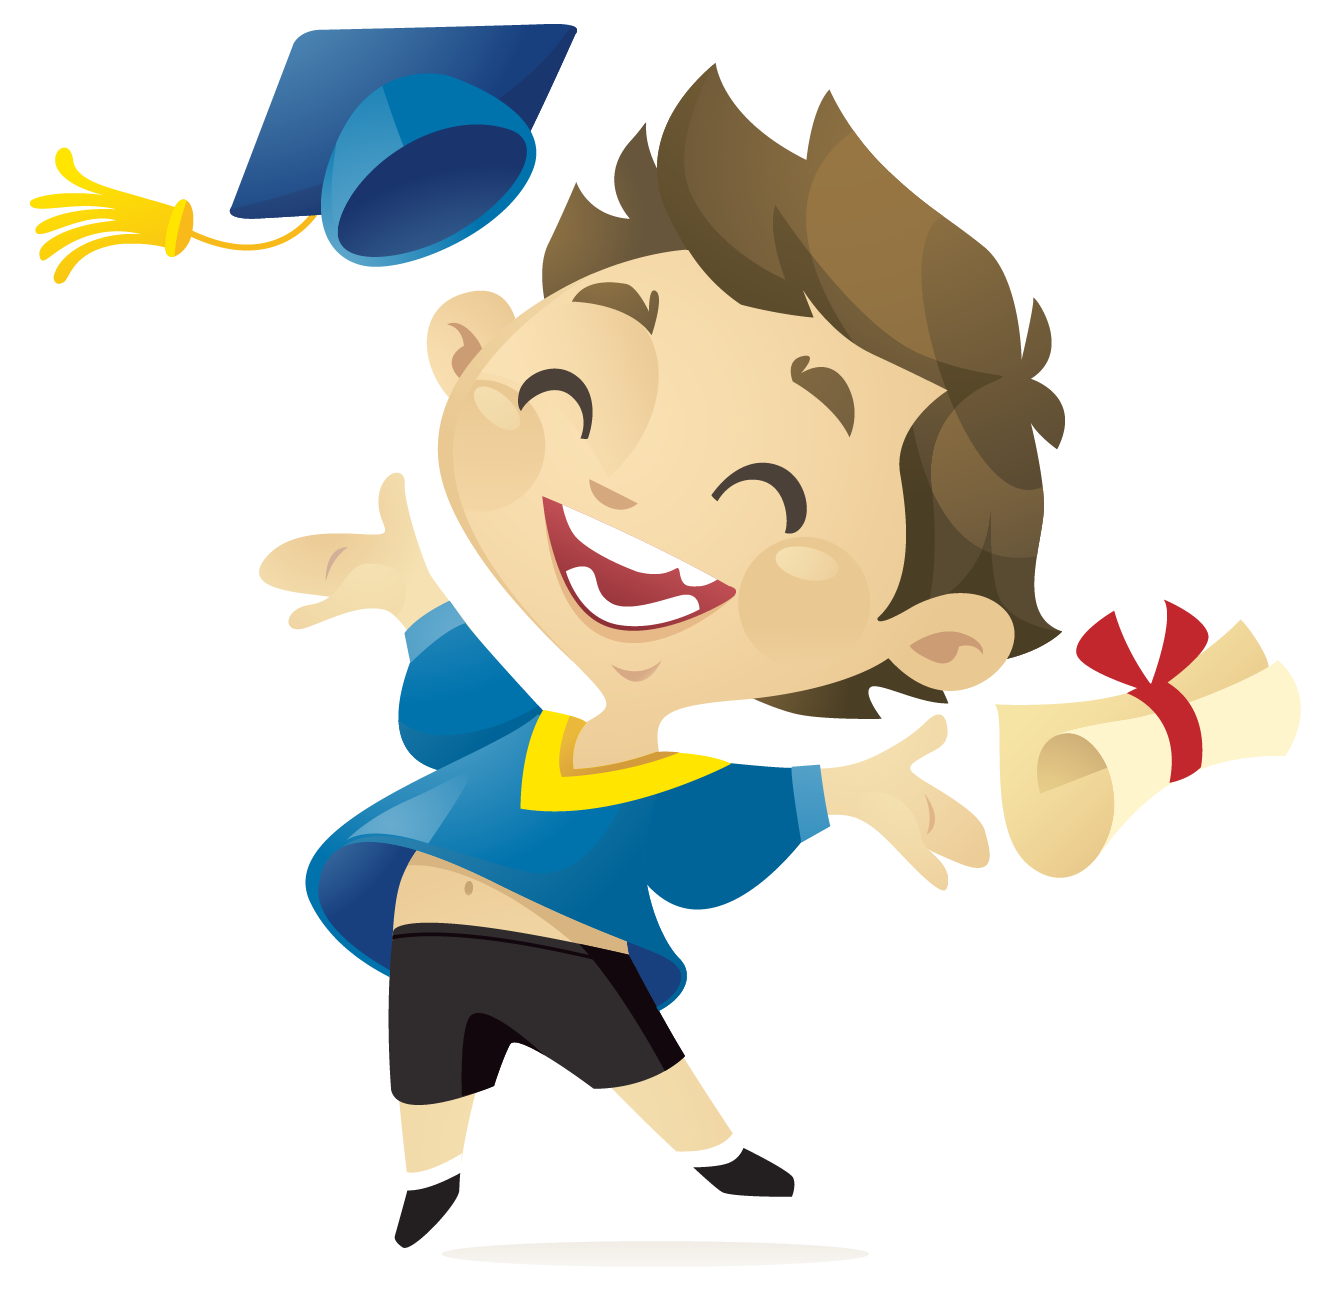 Graduation boy png. Download latest version free